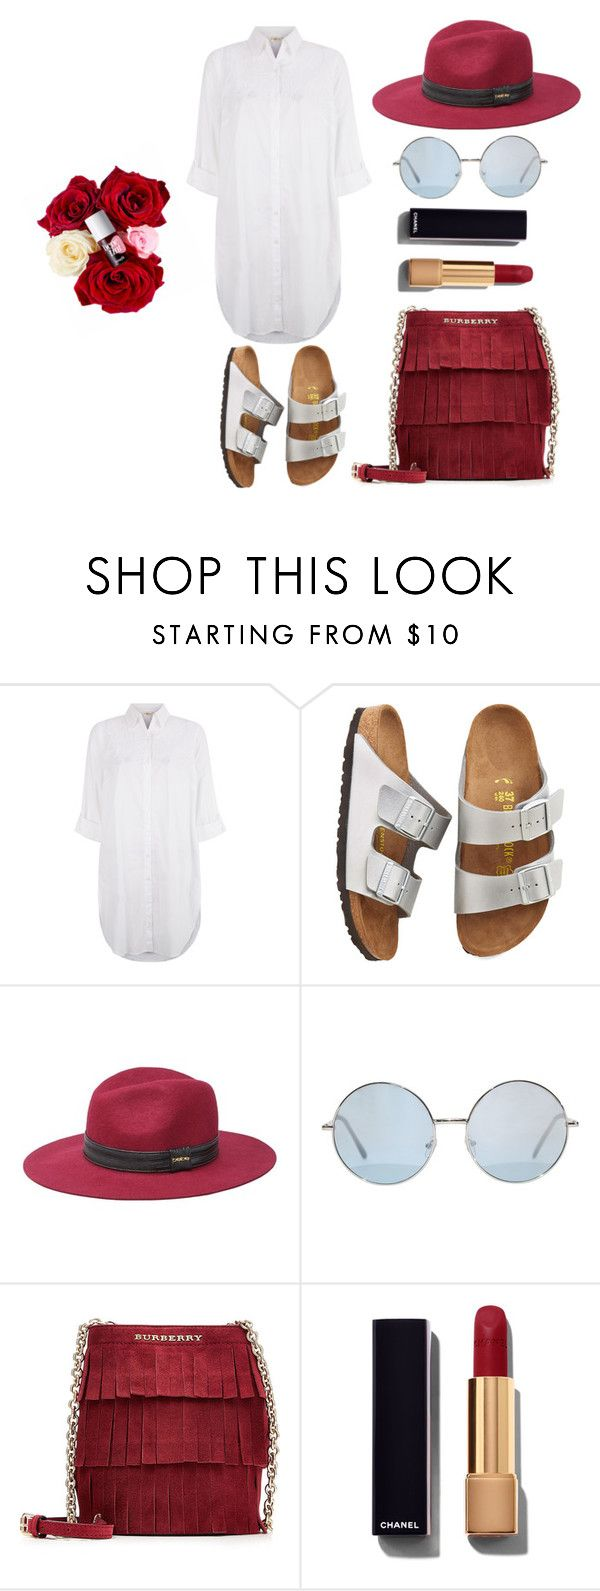 """""""BirkenStyle"""" by taniamandavela on Polyvore featuring Monsoon, Birkenstock, Bebe, Burberry, Chanel, women's clothing, women's fashion, women, female and woman"""